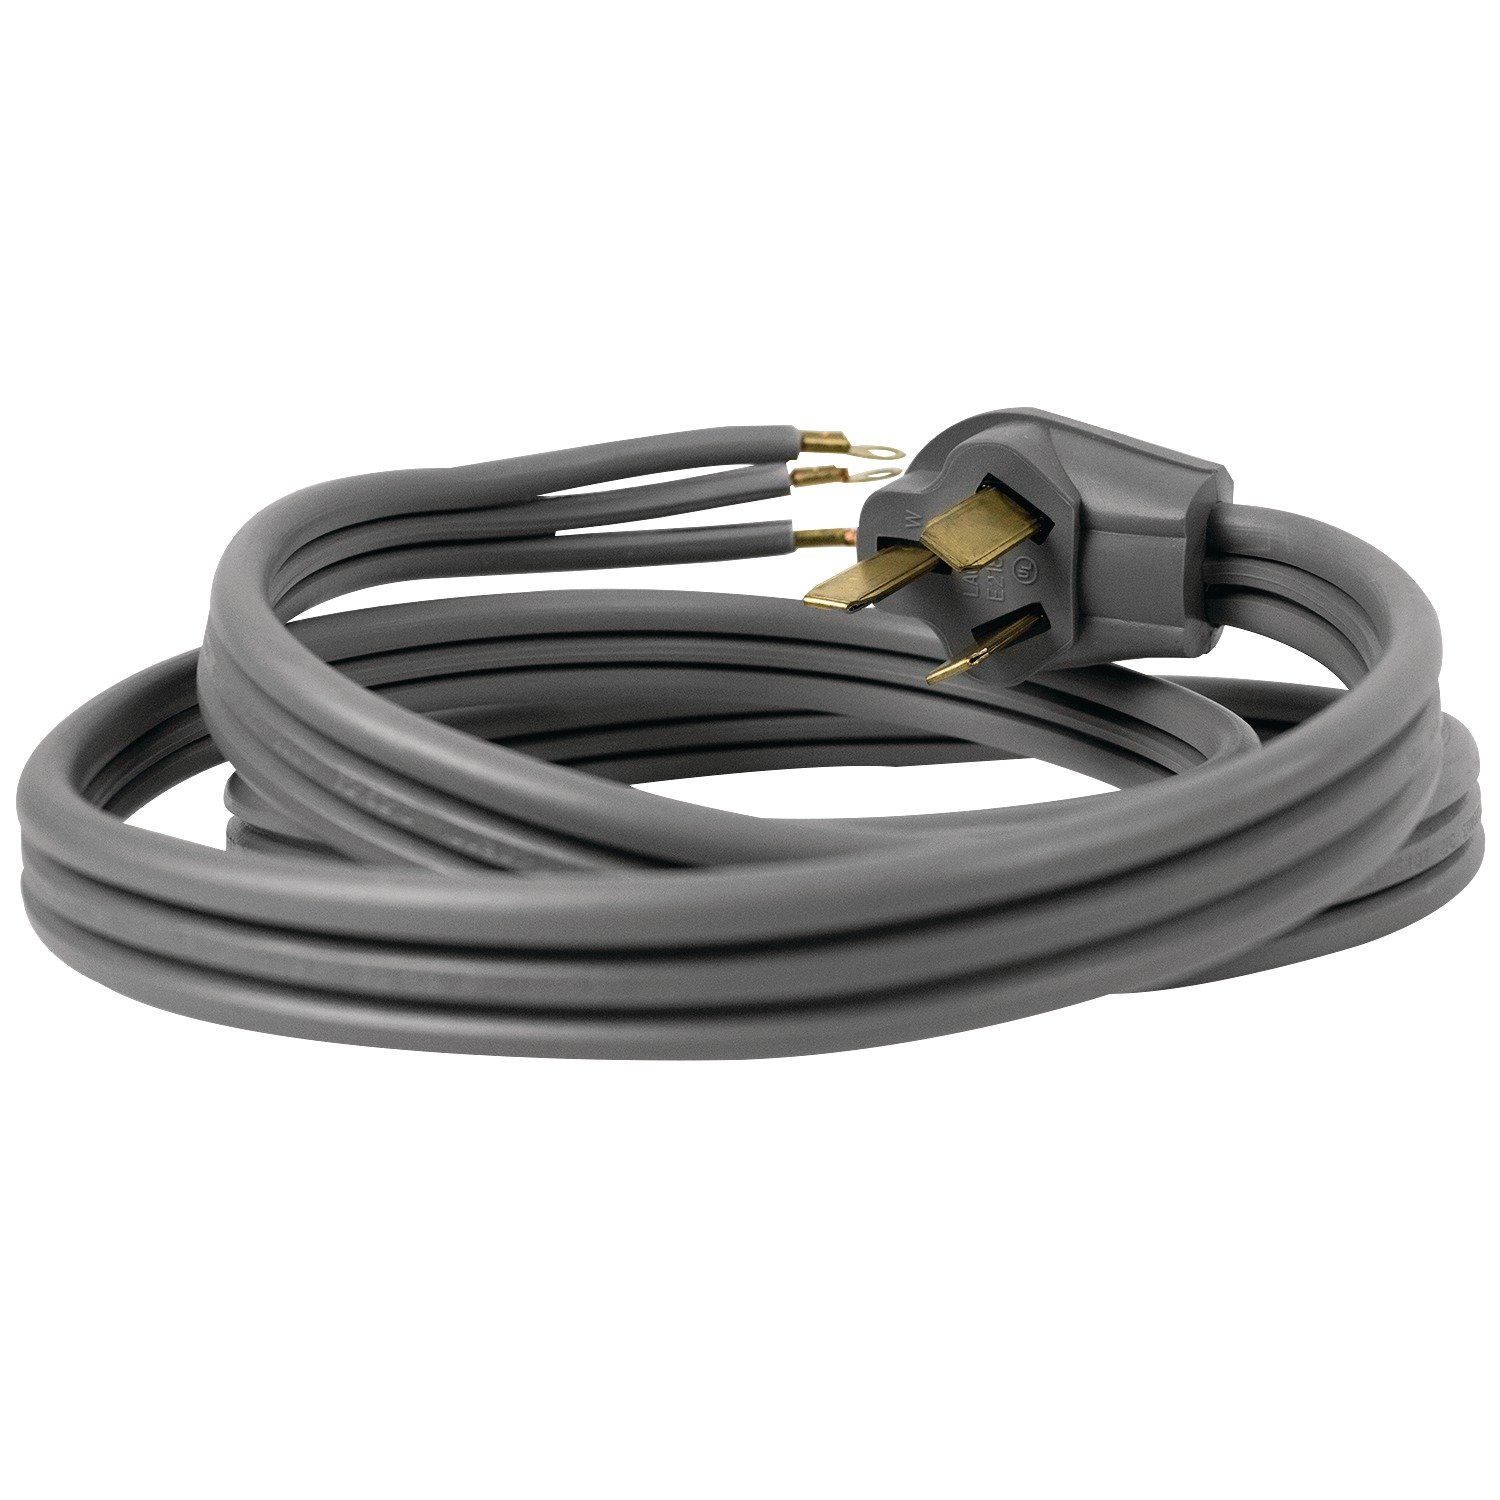 Certified Appliance Accessories 3 Wire Closed Eyelet 50 Dryer Plug Wiring Maytag Receptacle Amp Range Cord 10ft Home Improvement